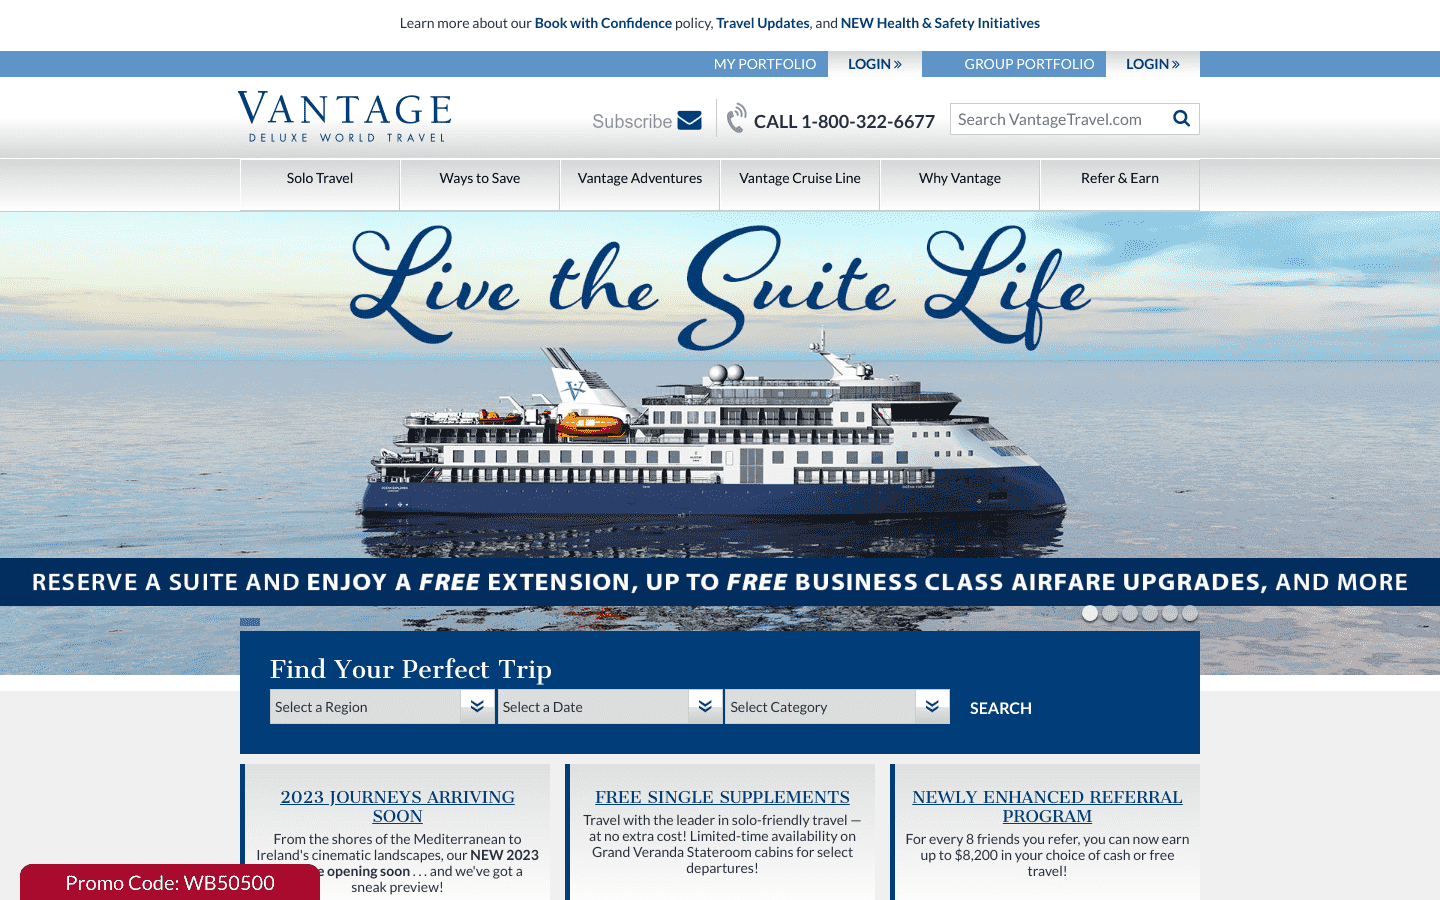 Vantage Deluxe World Travel reviews and complaints